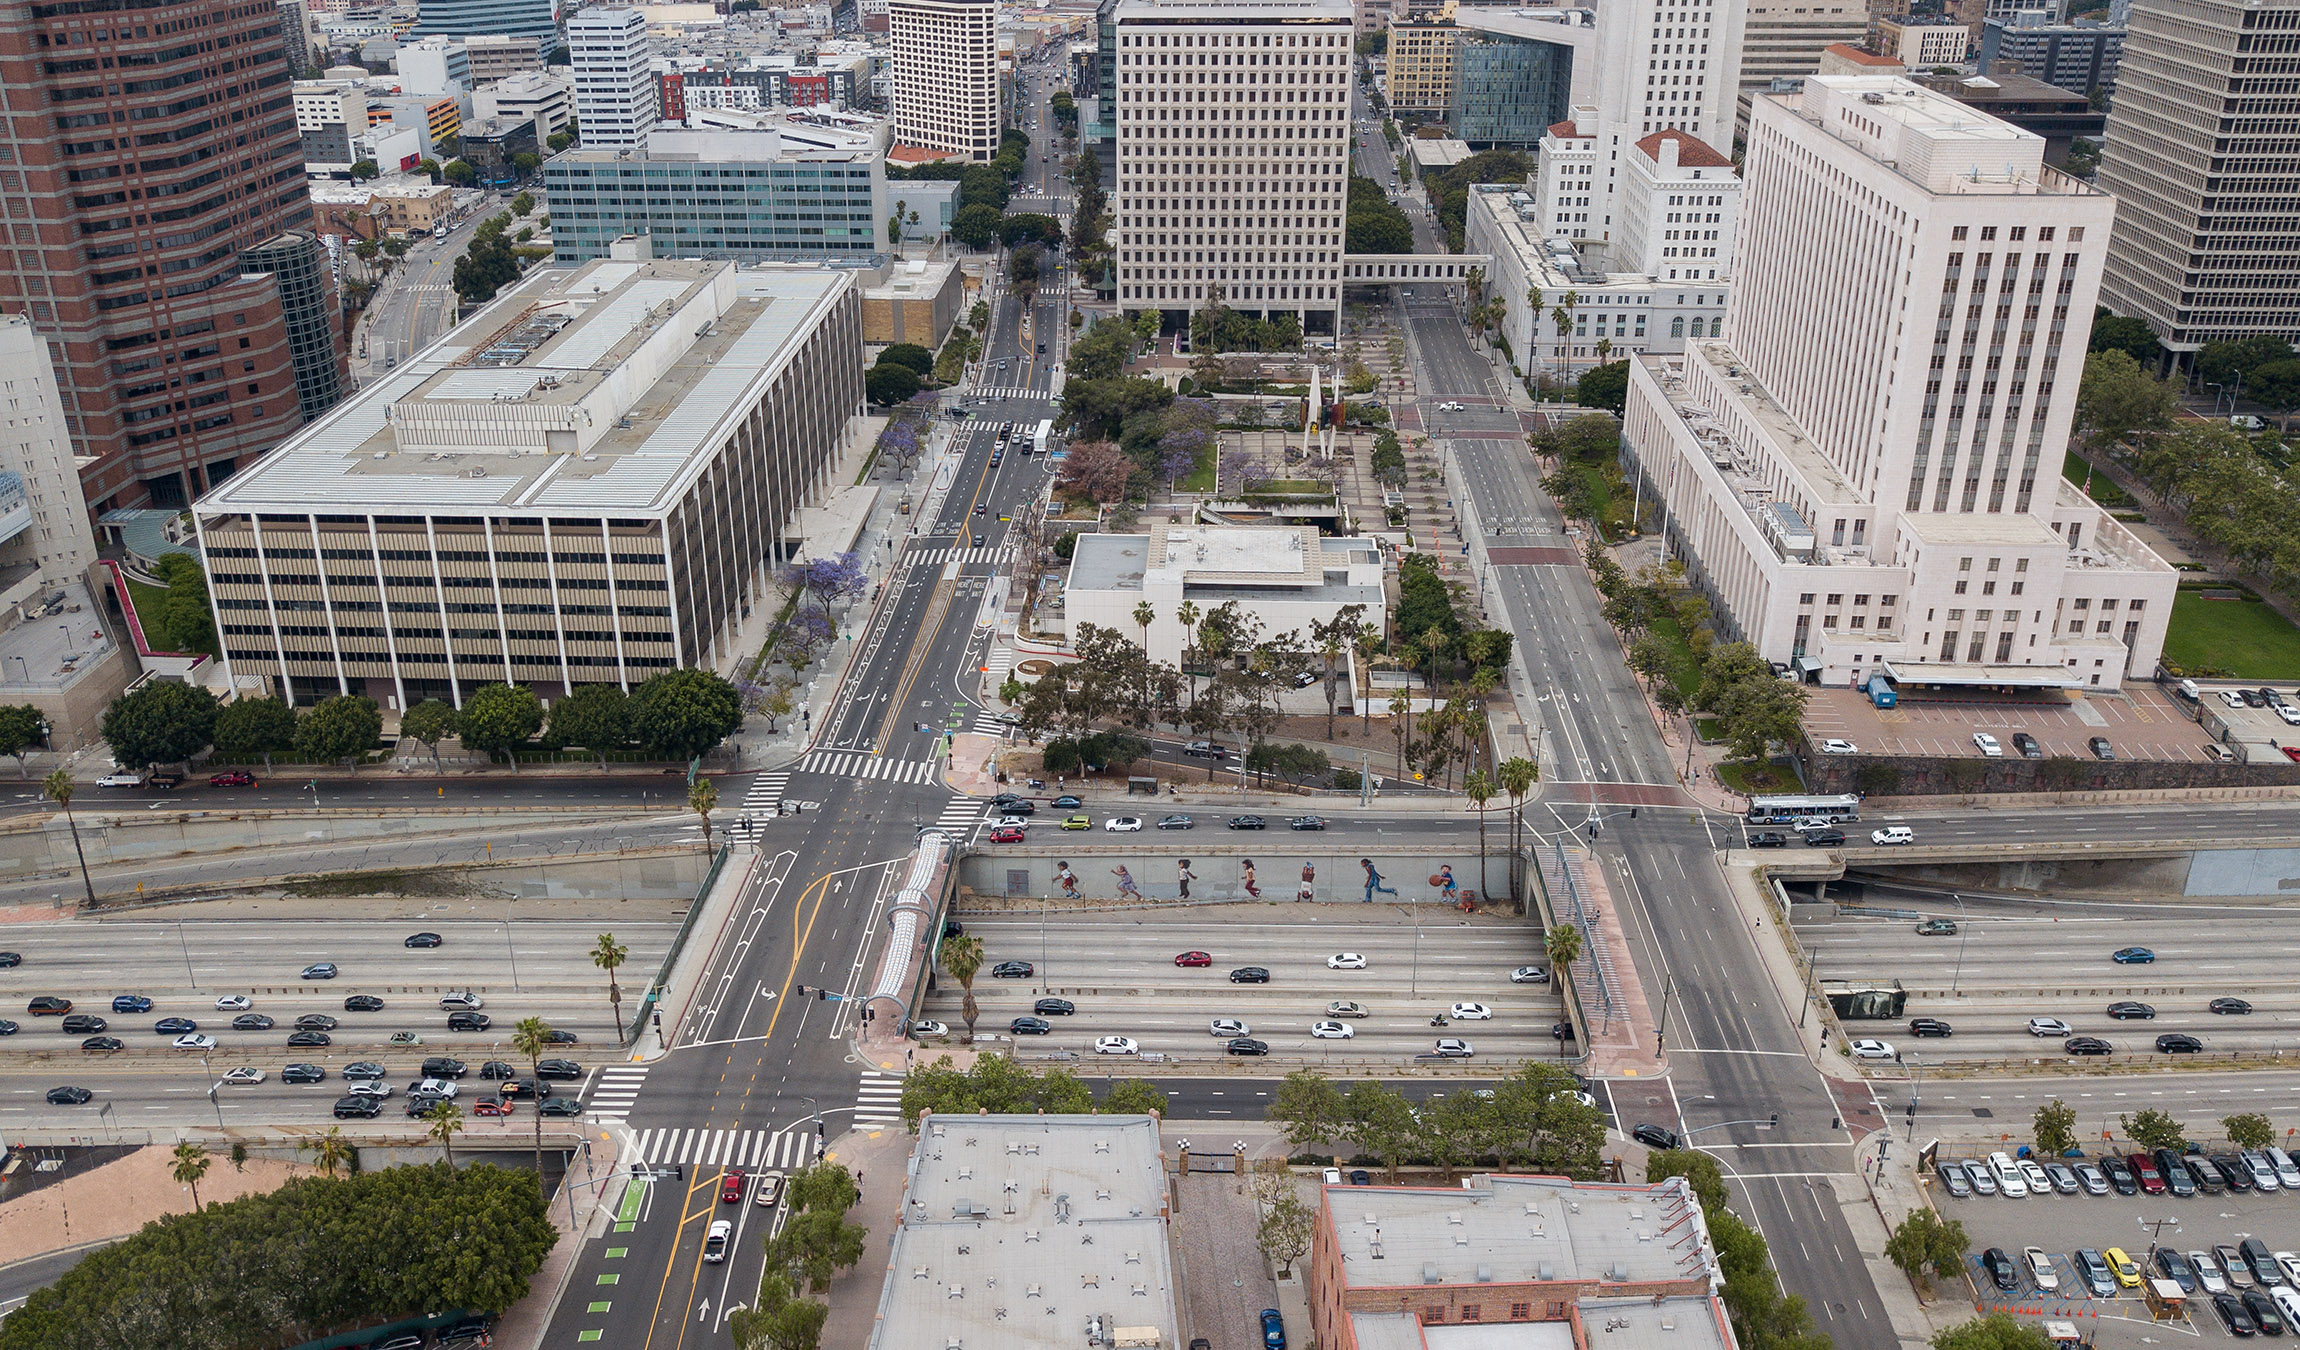 Heres Where The 101 Freeway Cap Park Could Transform Downtown LA